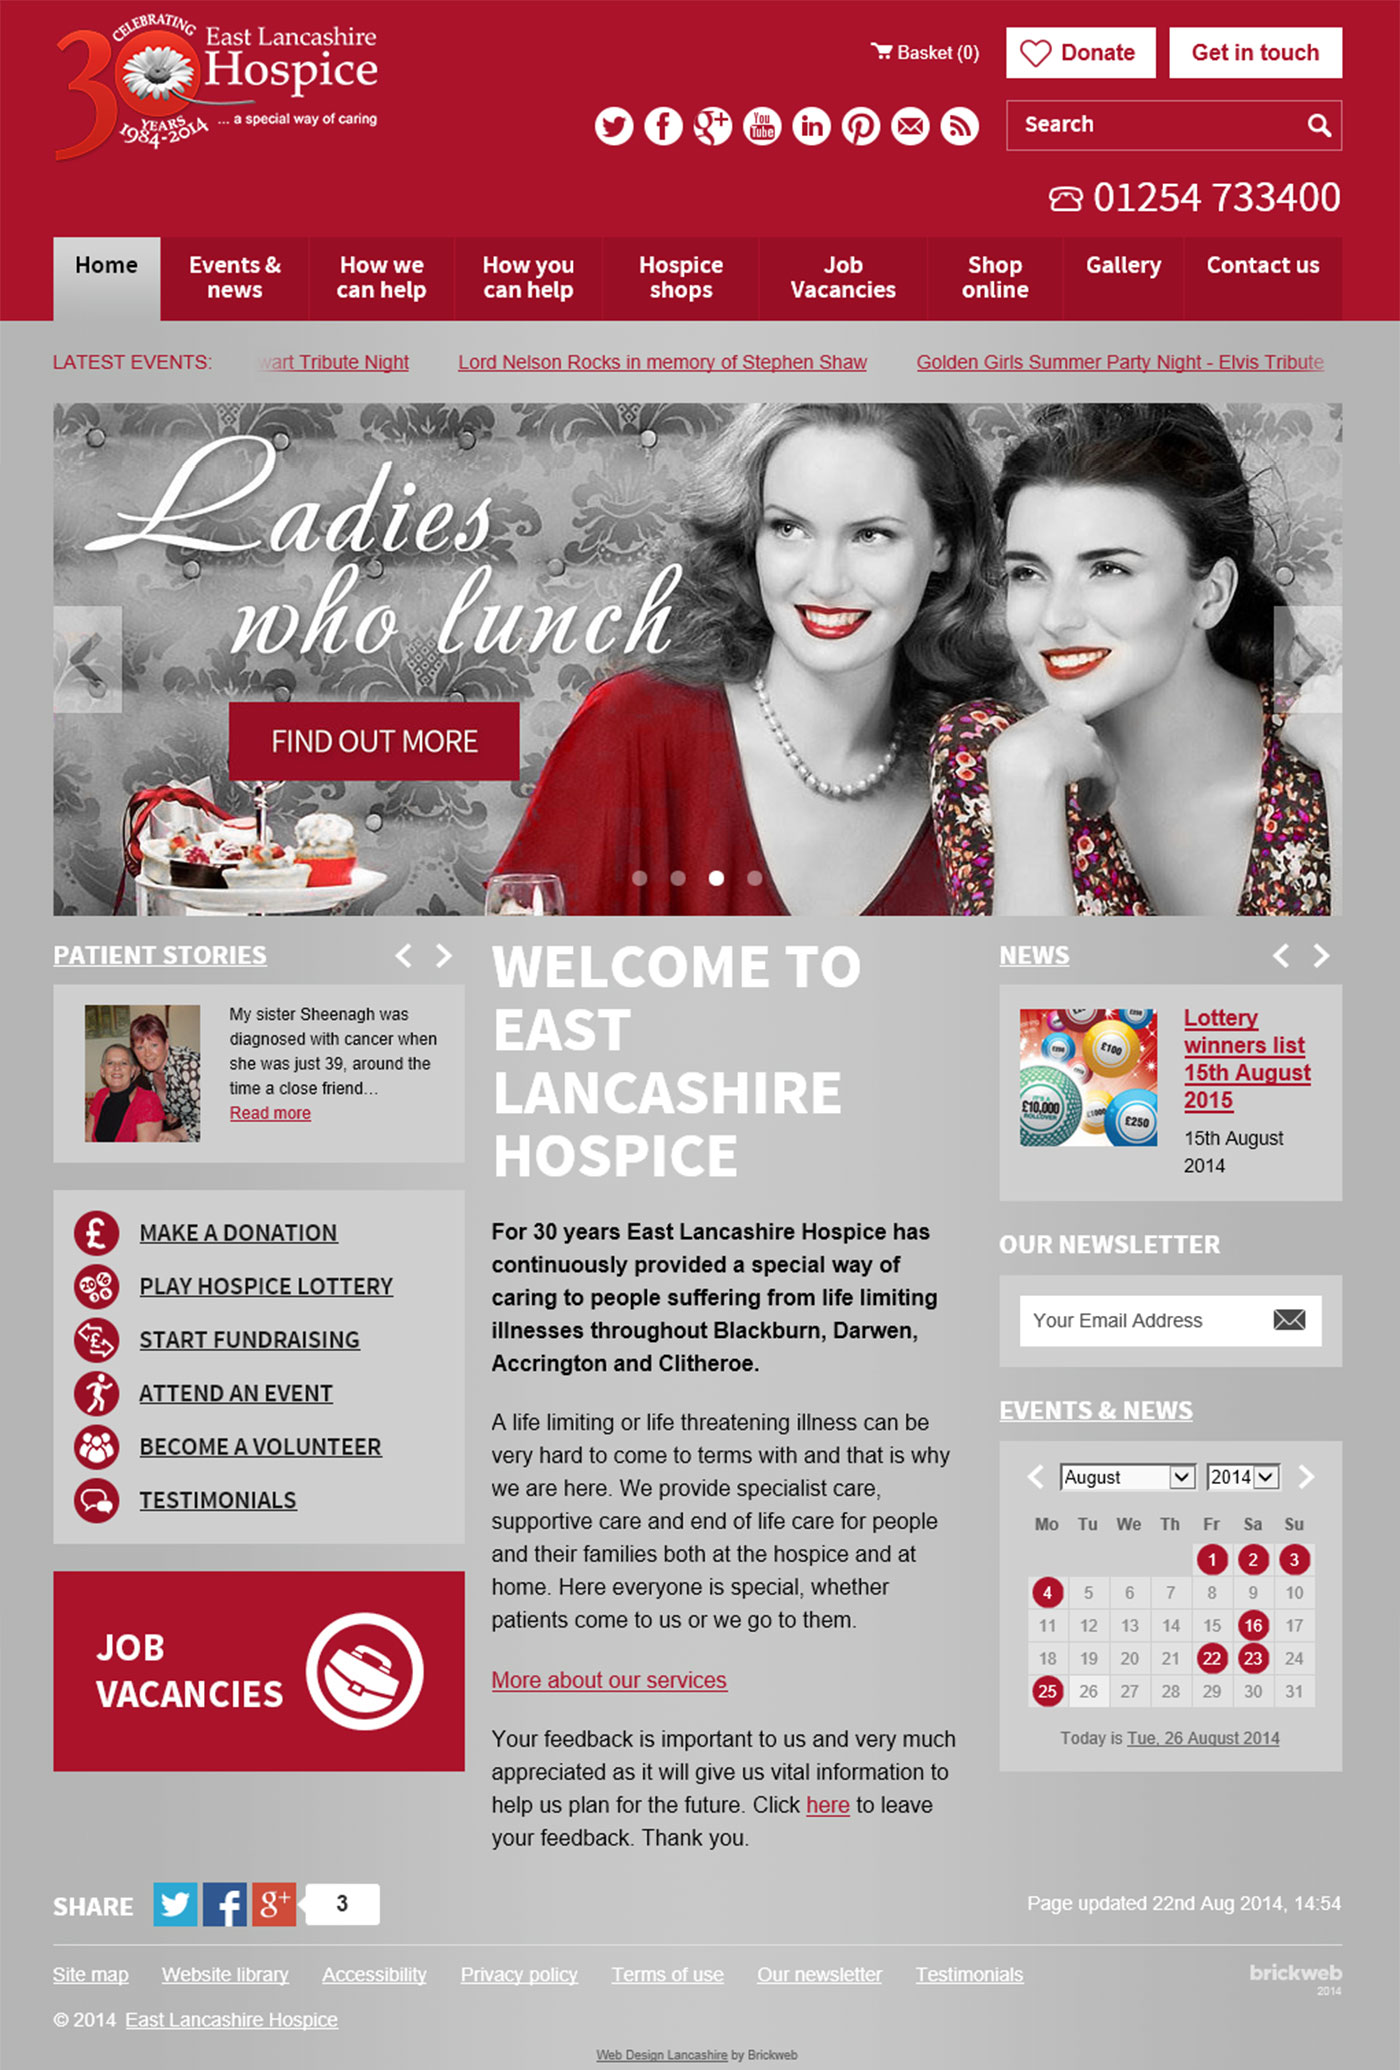 East Lancashire Hospice Home page